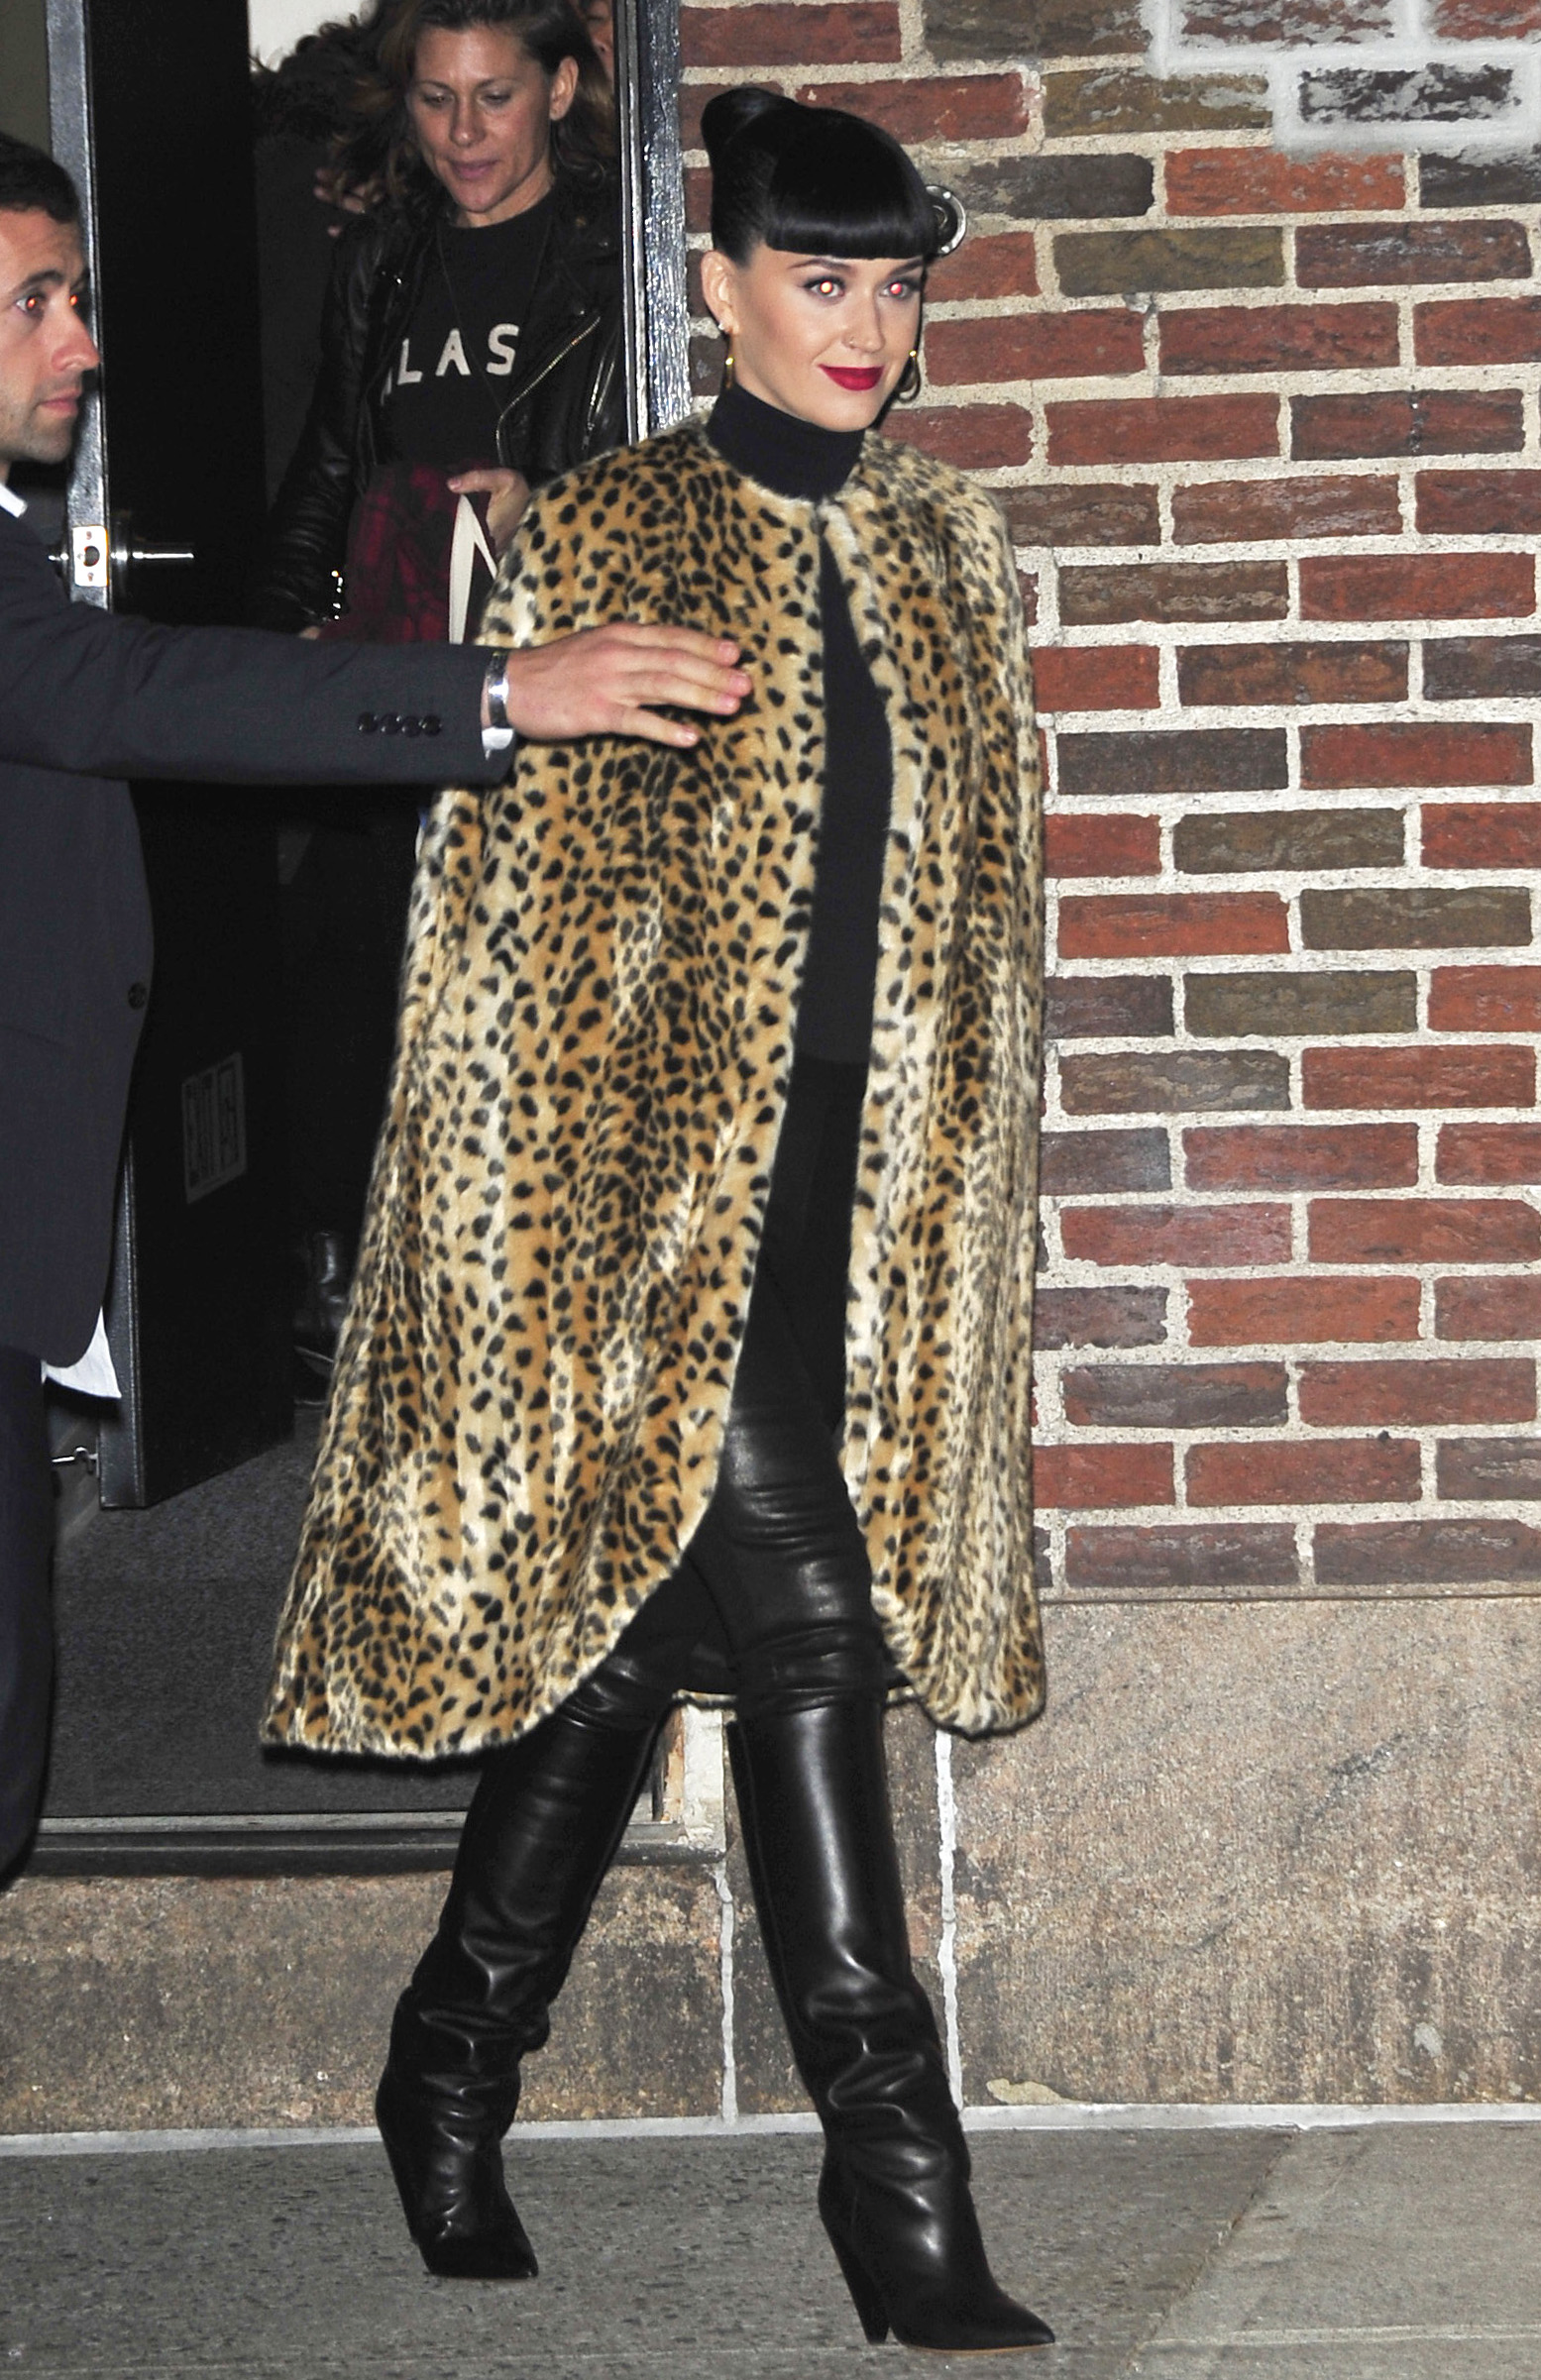 Taylor Swift Trolled By Katy Perry With Leopard Jacket: Singer Igniting Another Public Feud?